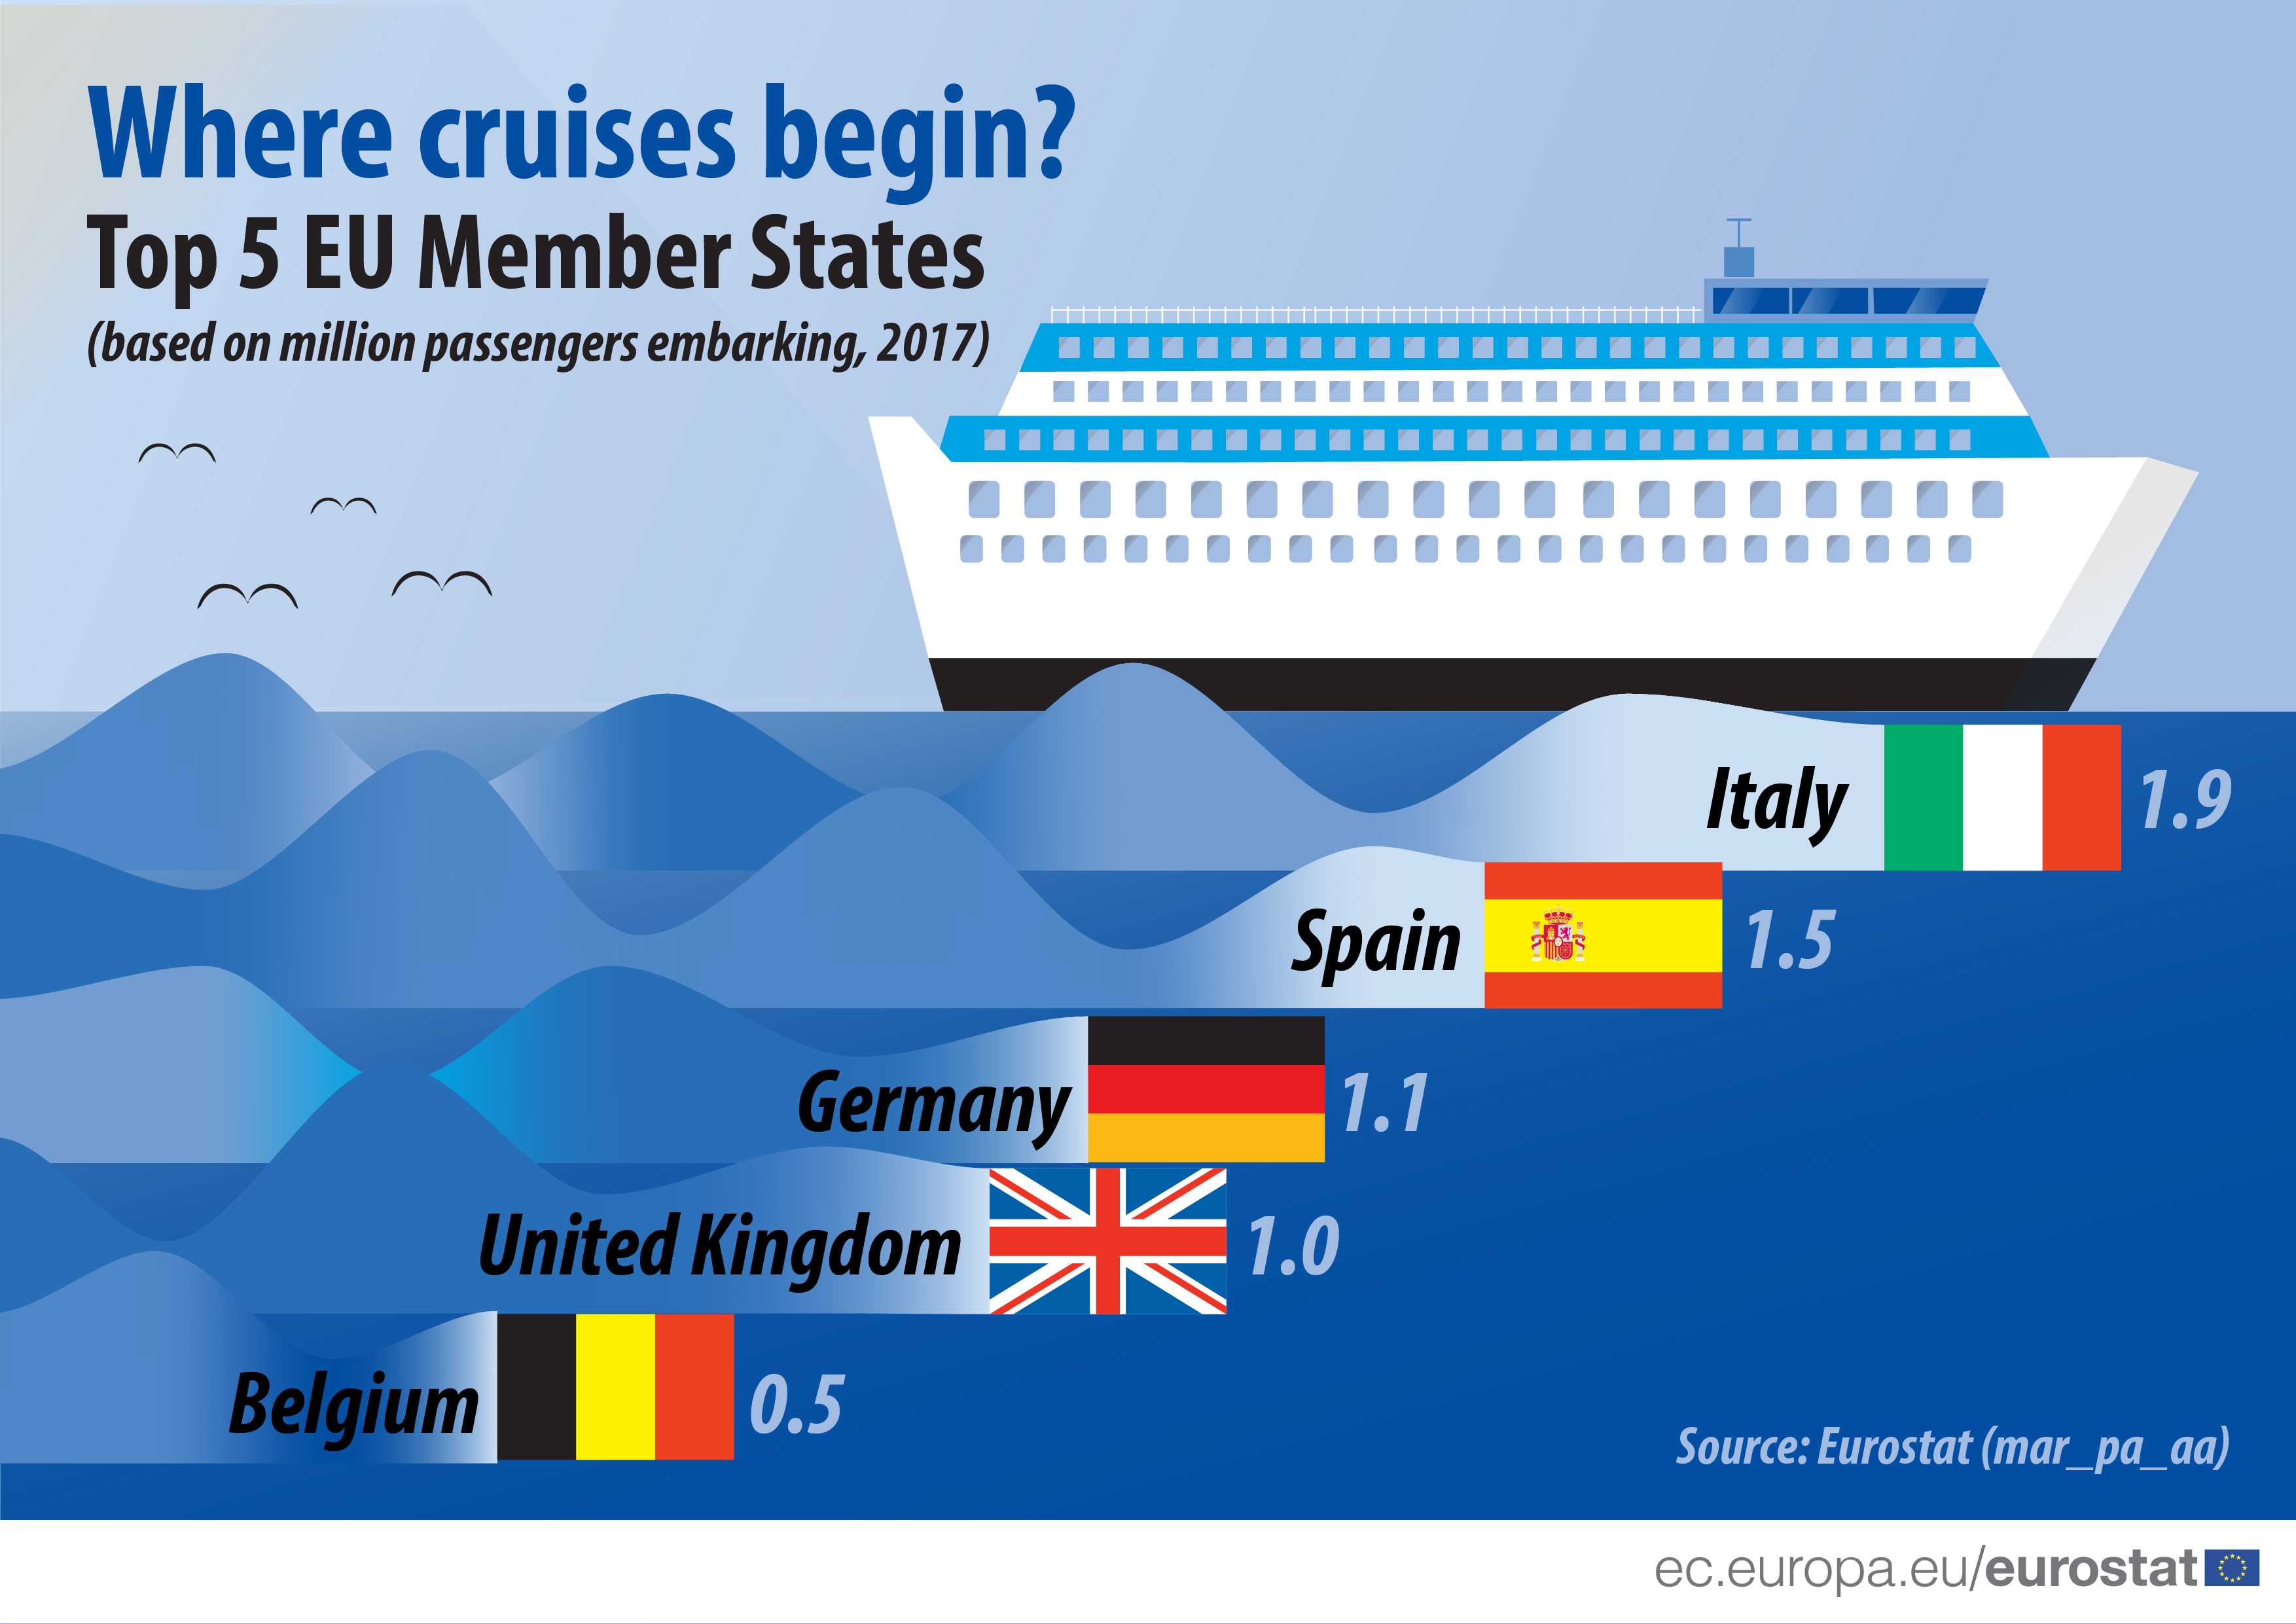 Infographic showing top 5 Member States where cruises began in 2017